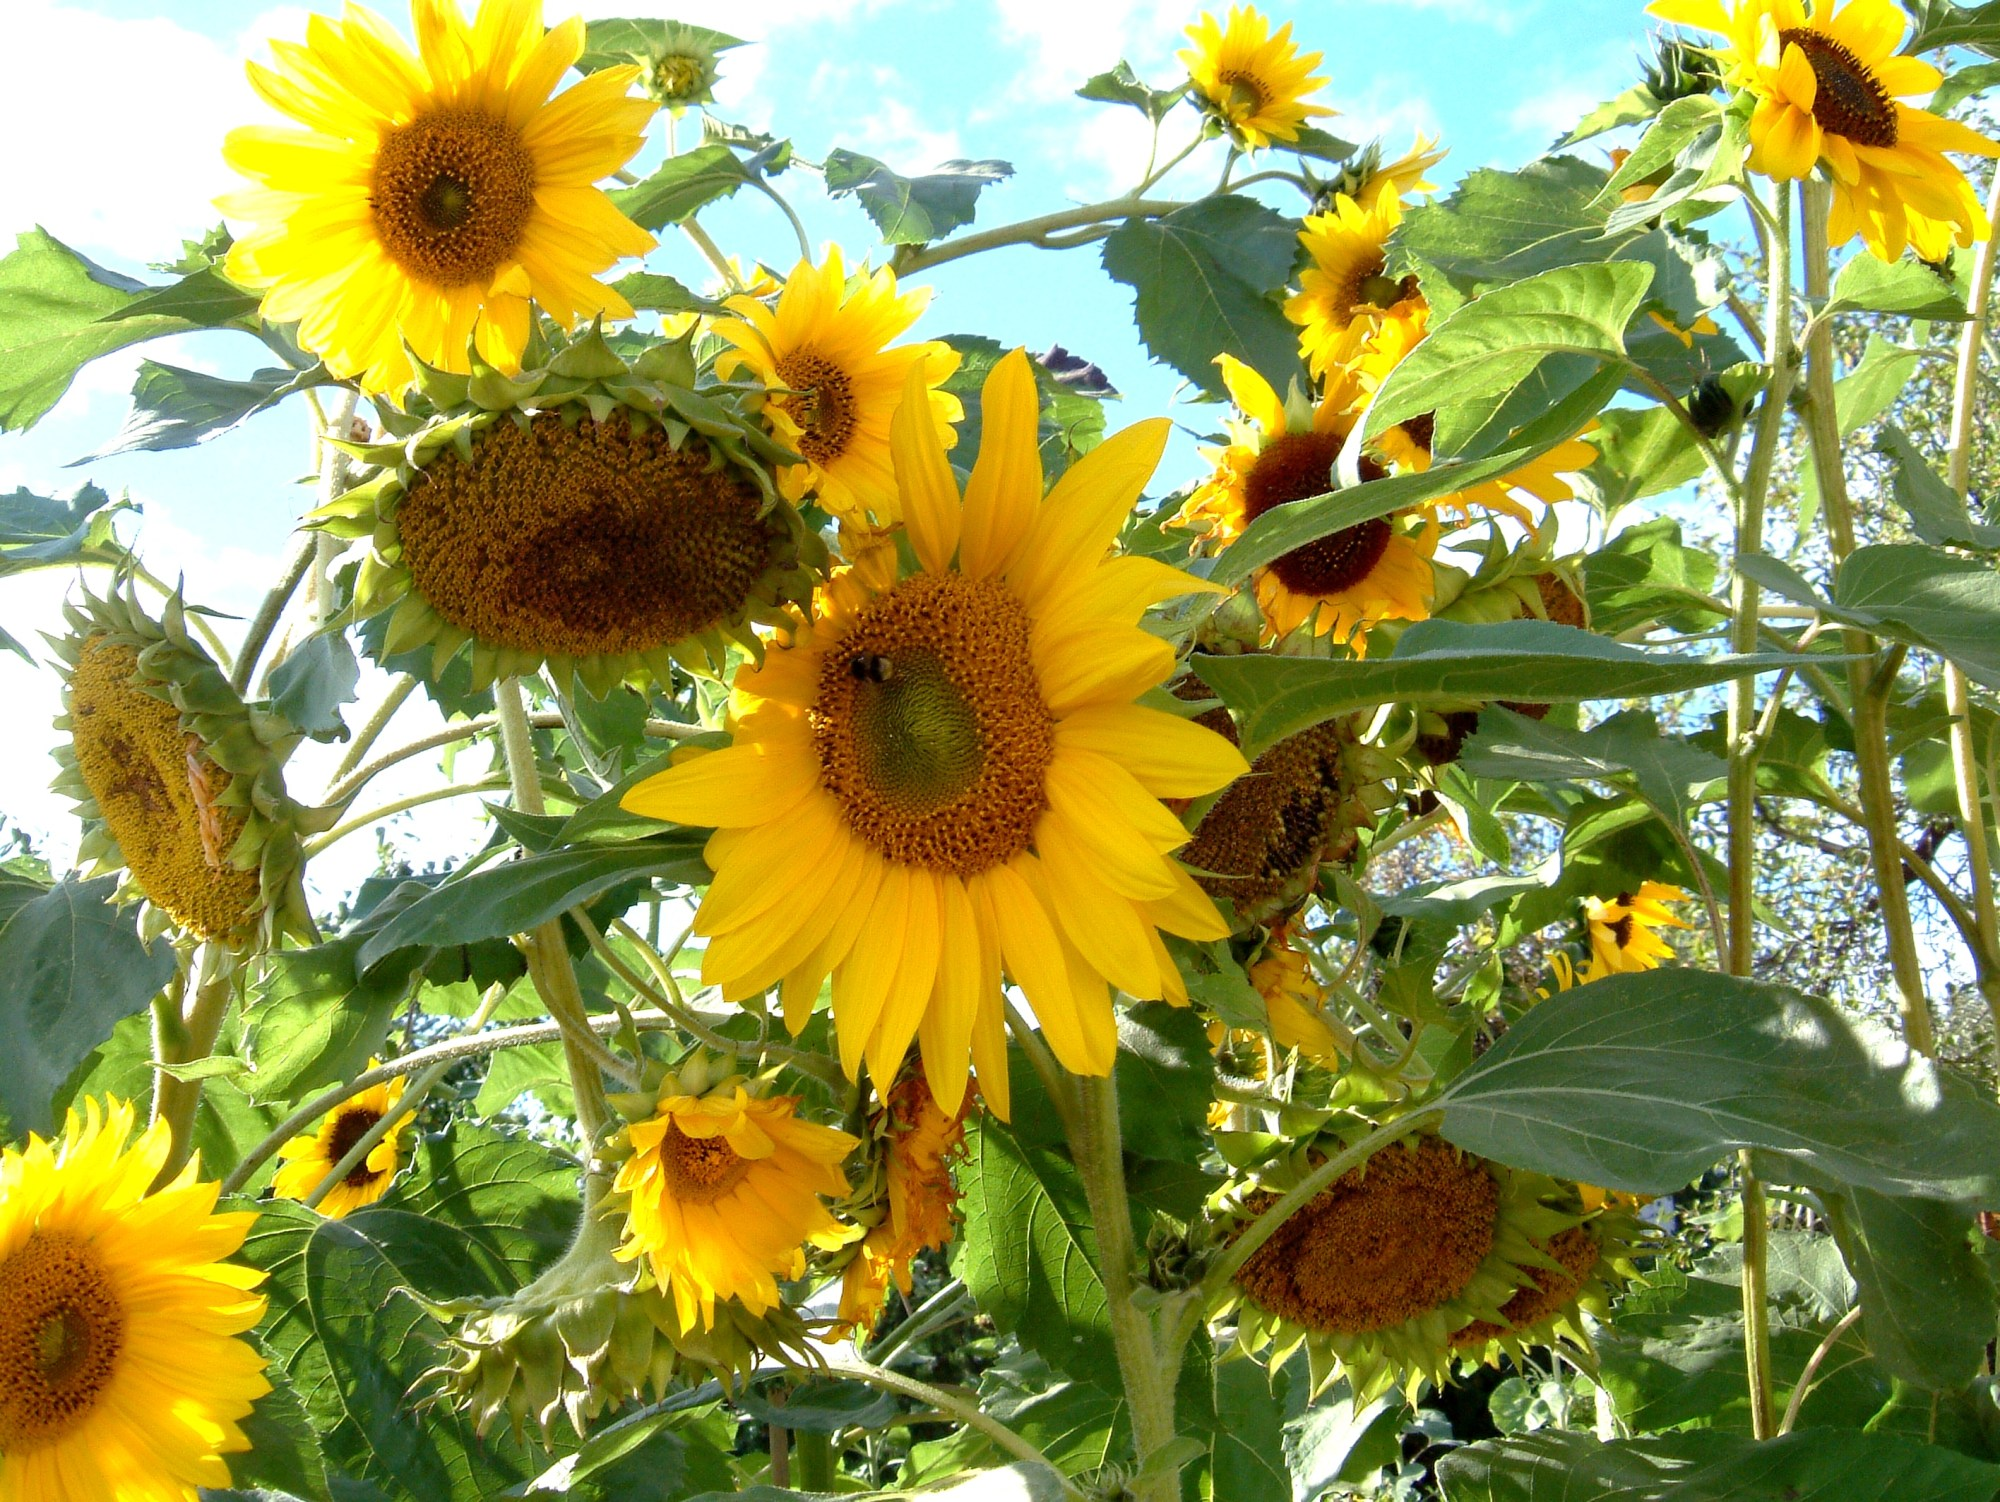 hight resolution of how do sunflowers reproduce